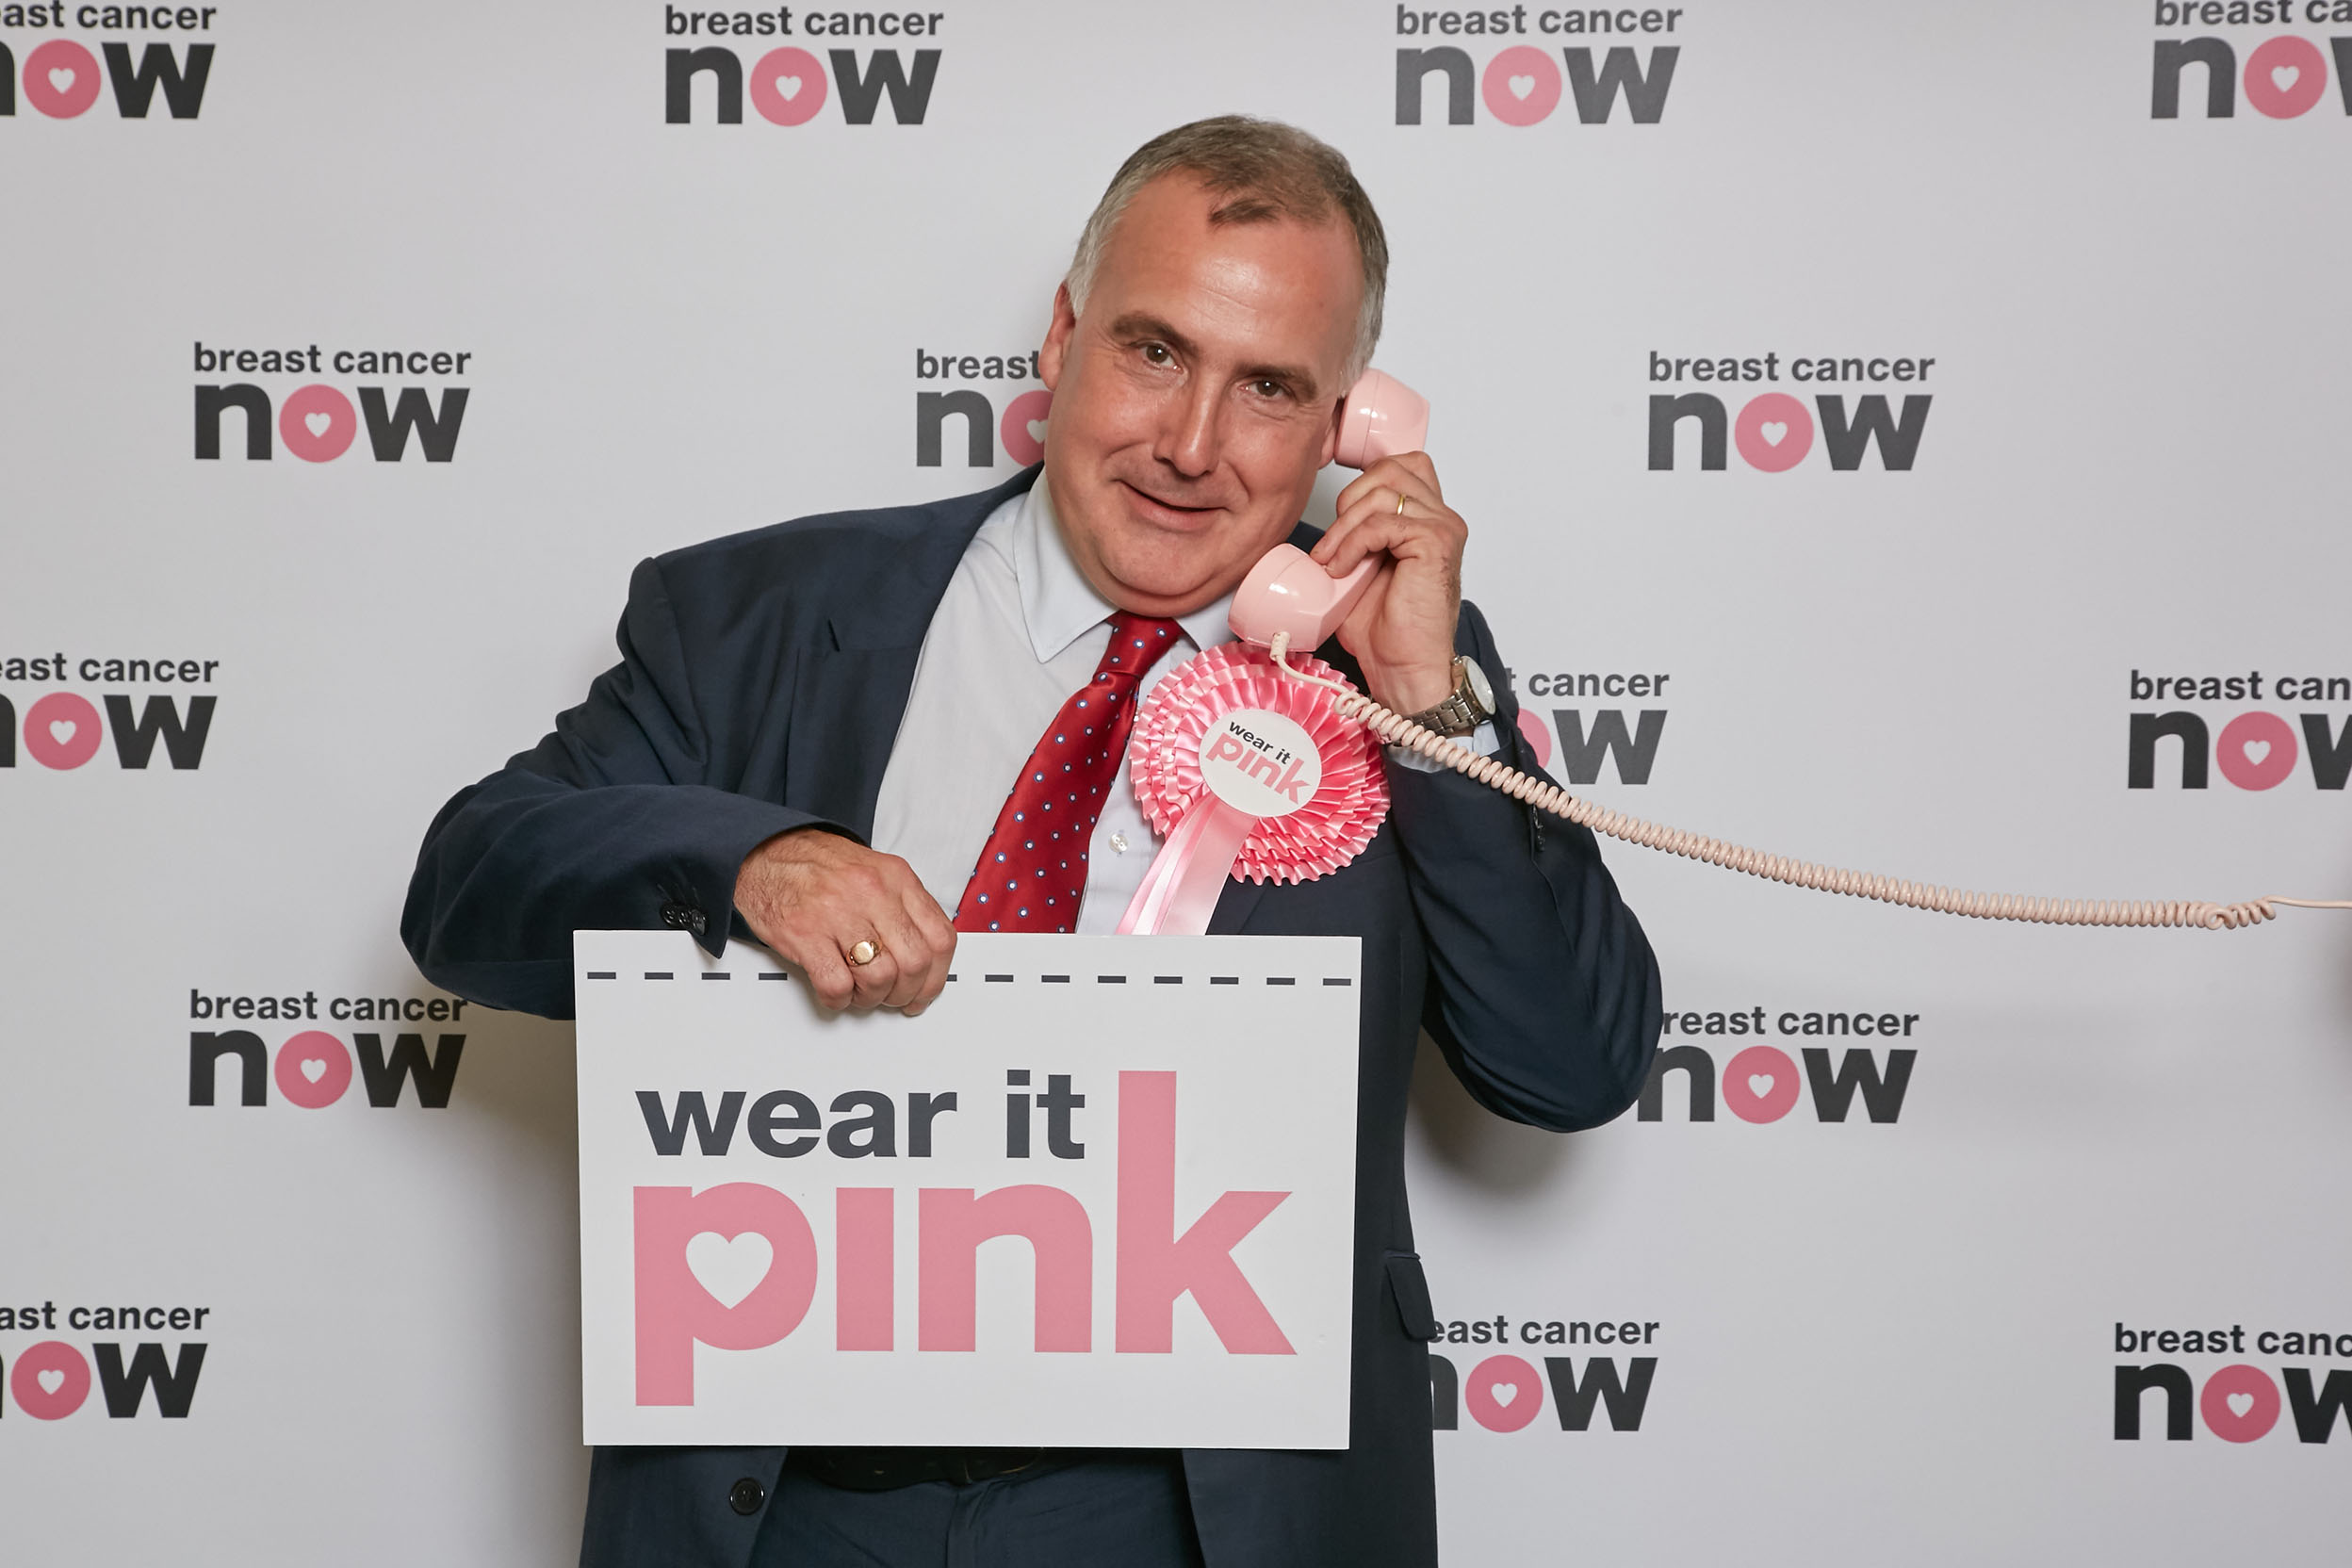 key_wearitpink.jpg